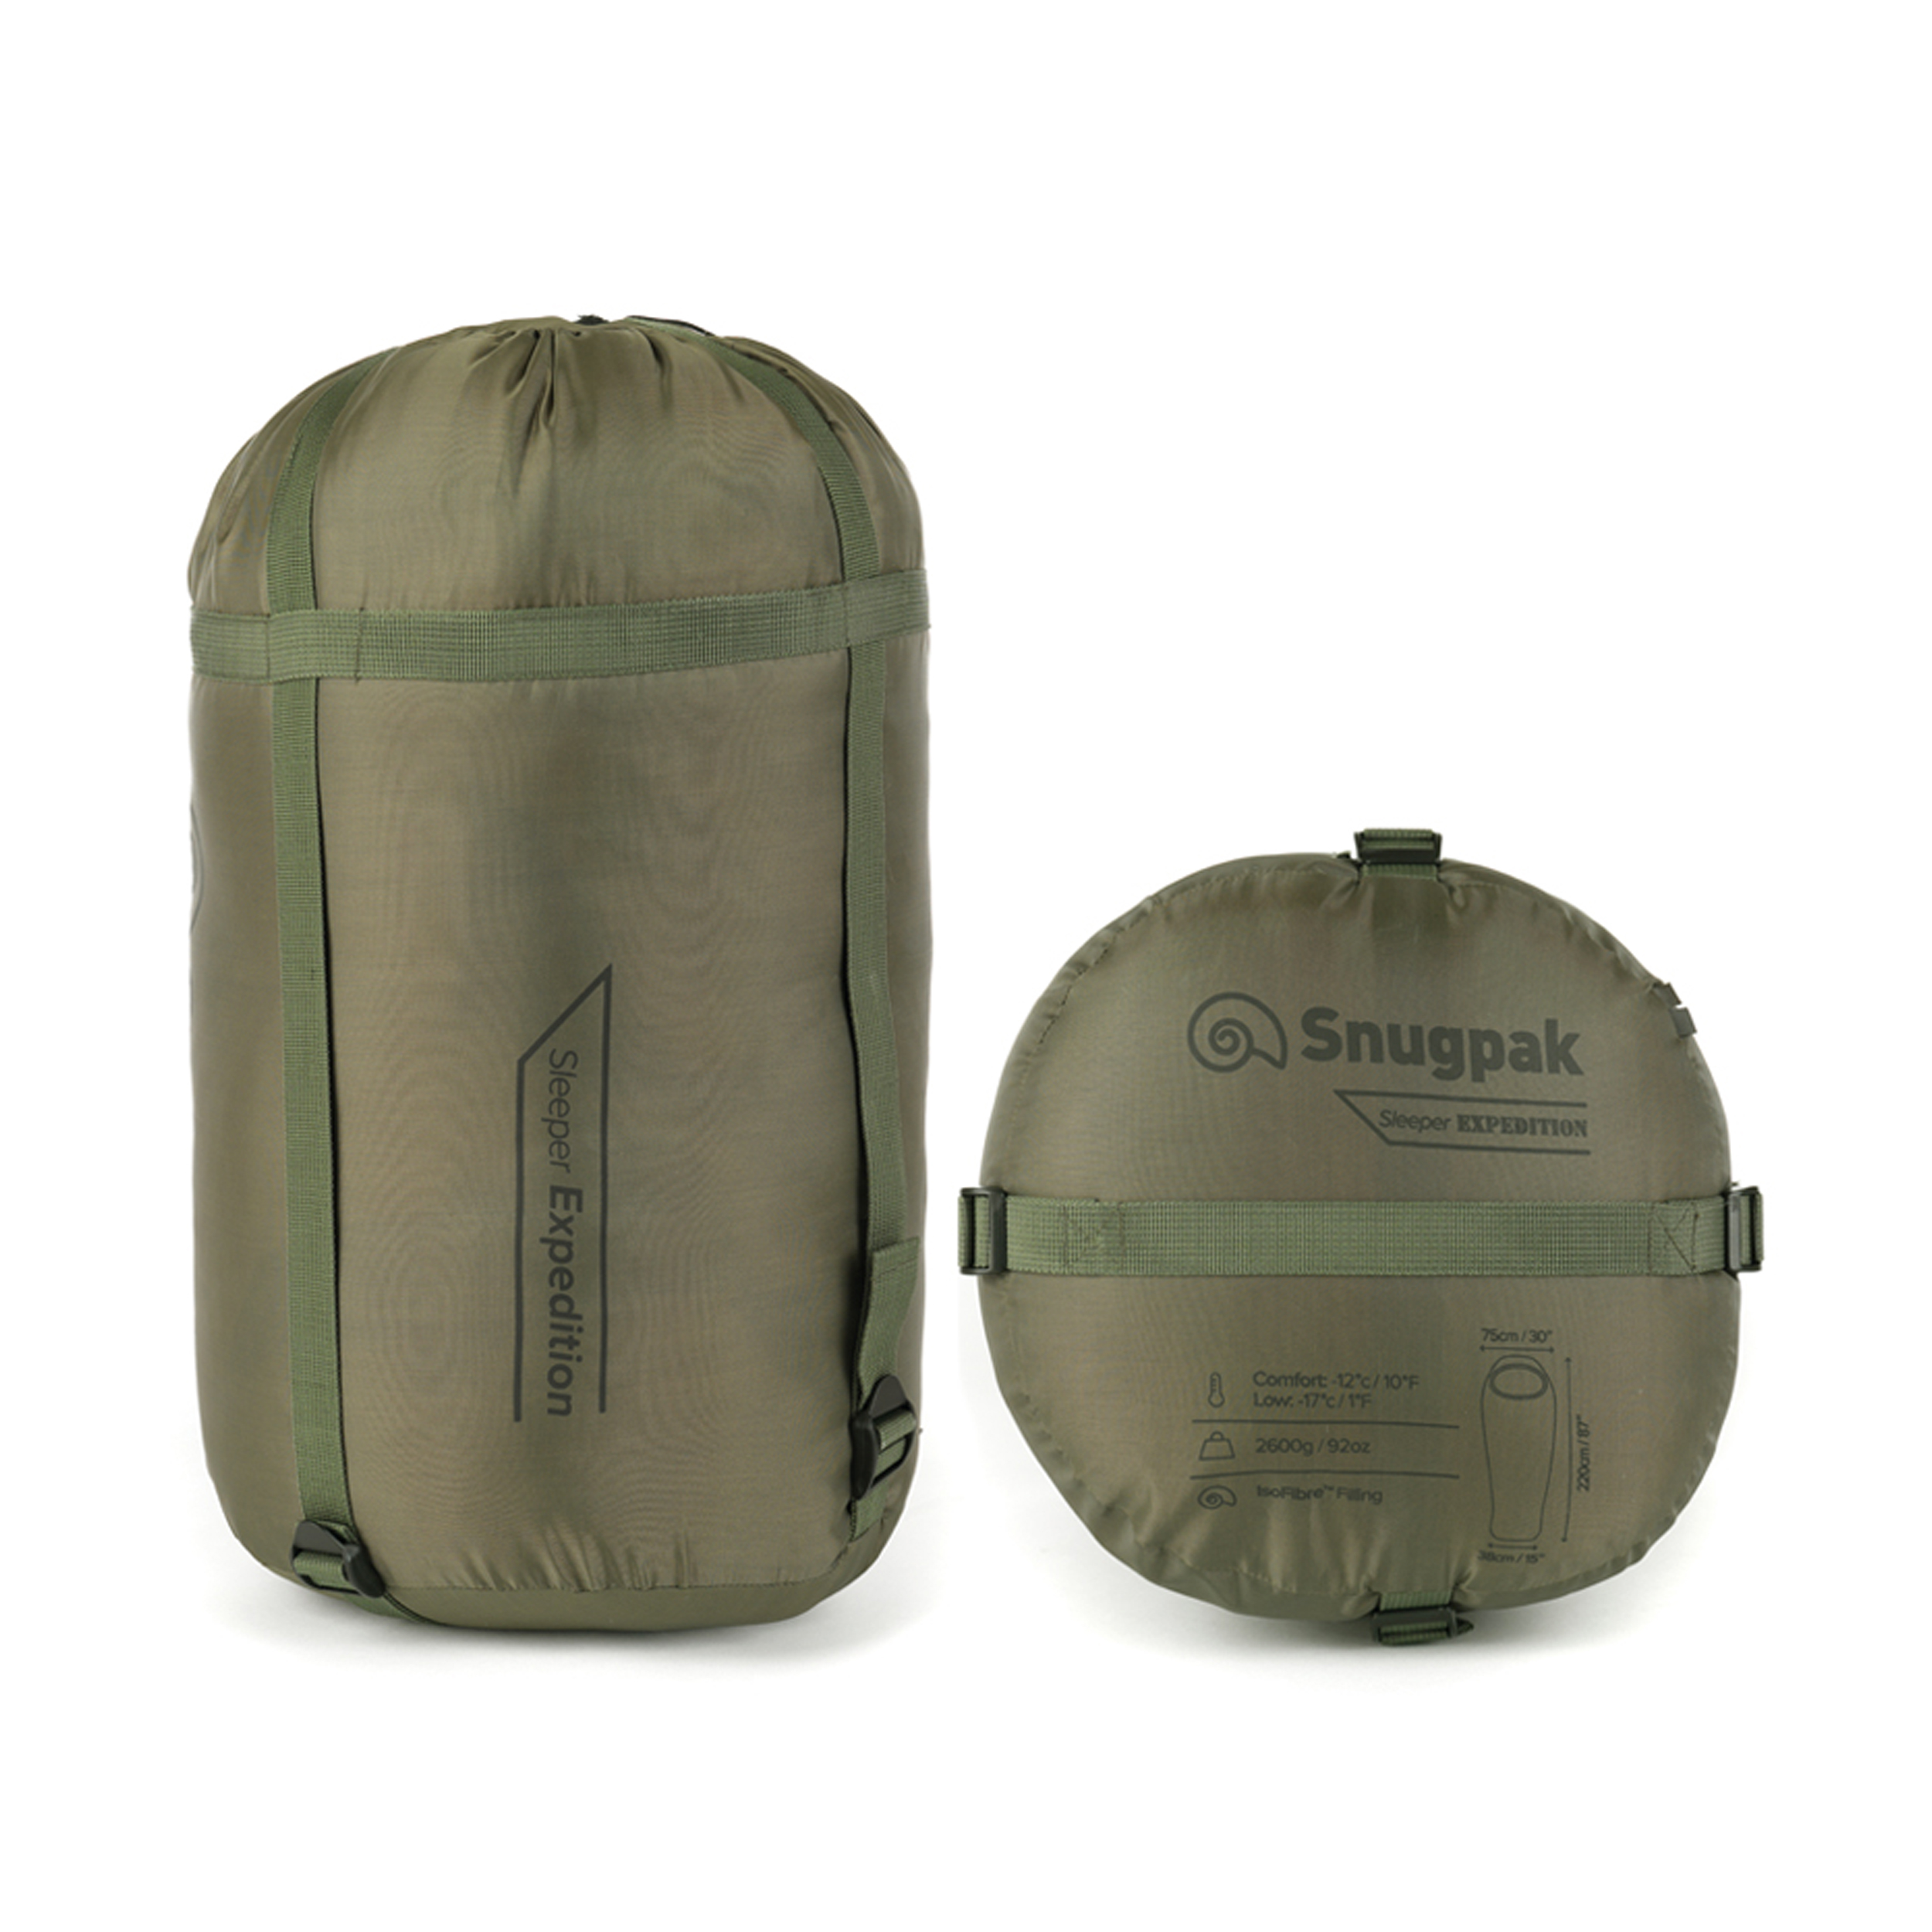 Snugpak-Basecamp-Ops-Sleeper-Expedition-Sleeping-Bag-4-Season-Insulated-Olive thumbnail 5